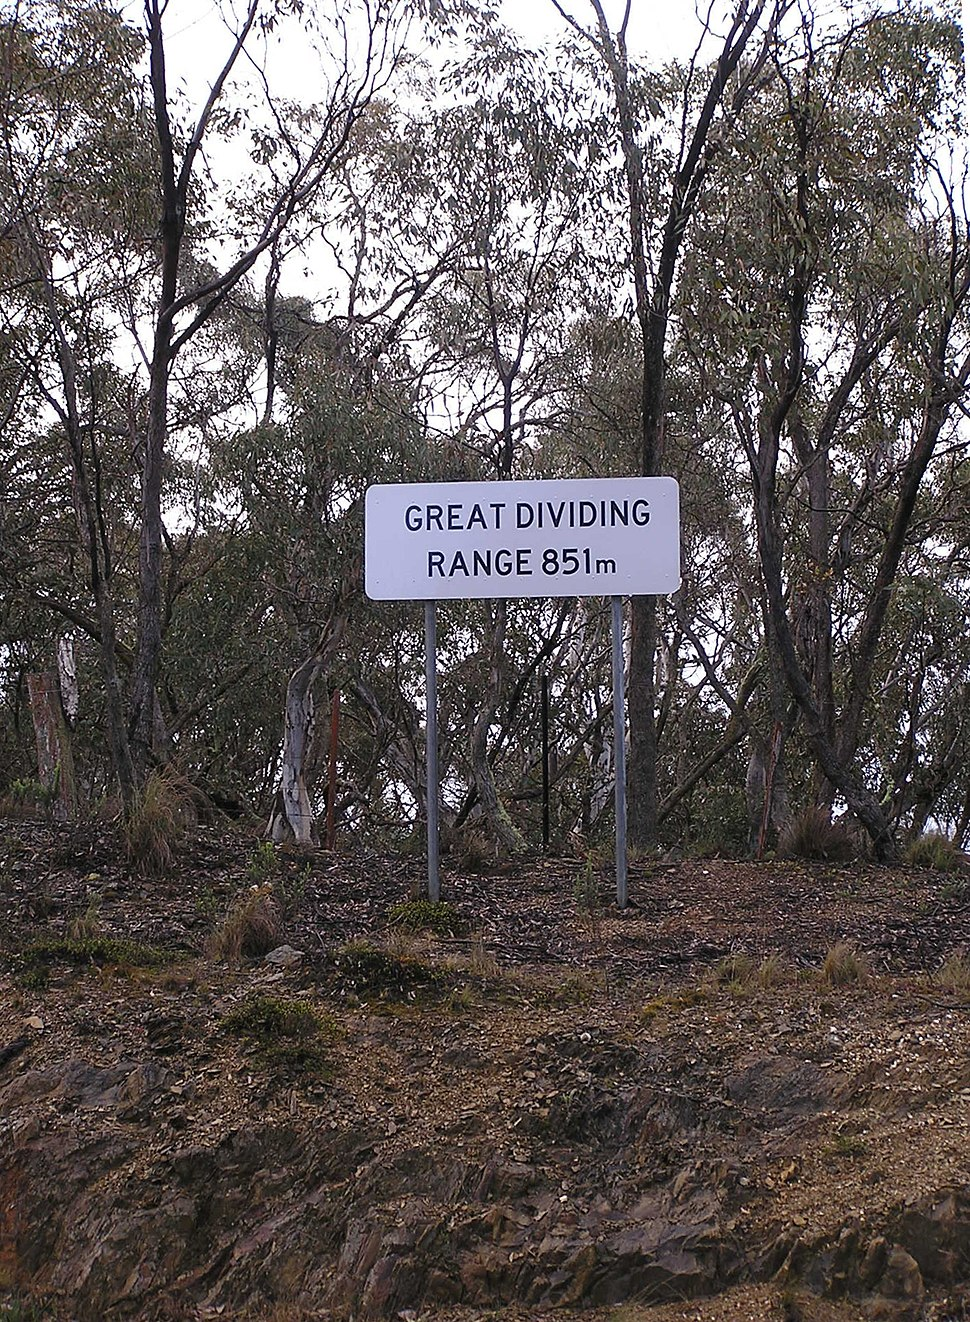 GreatDividingRangeSign